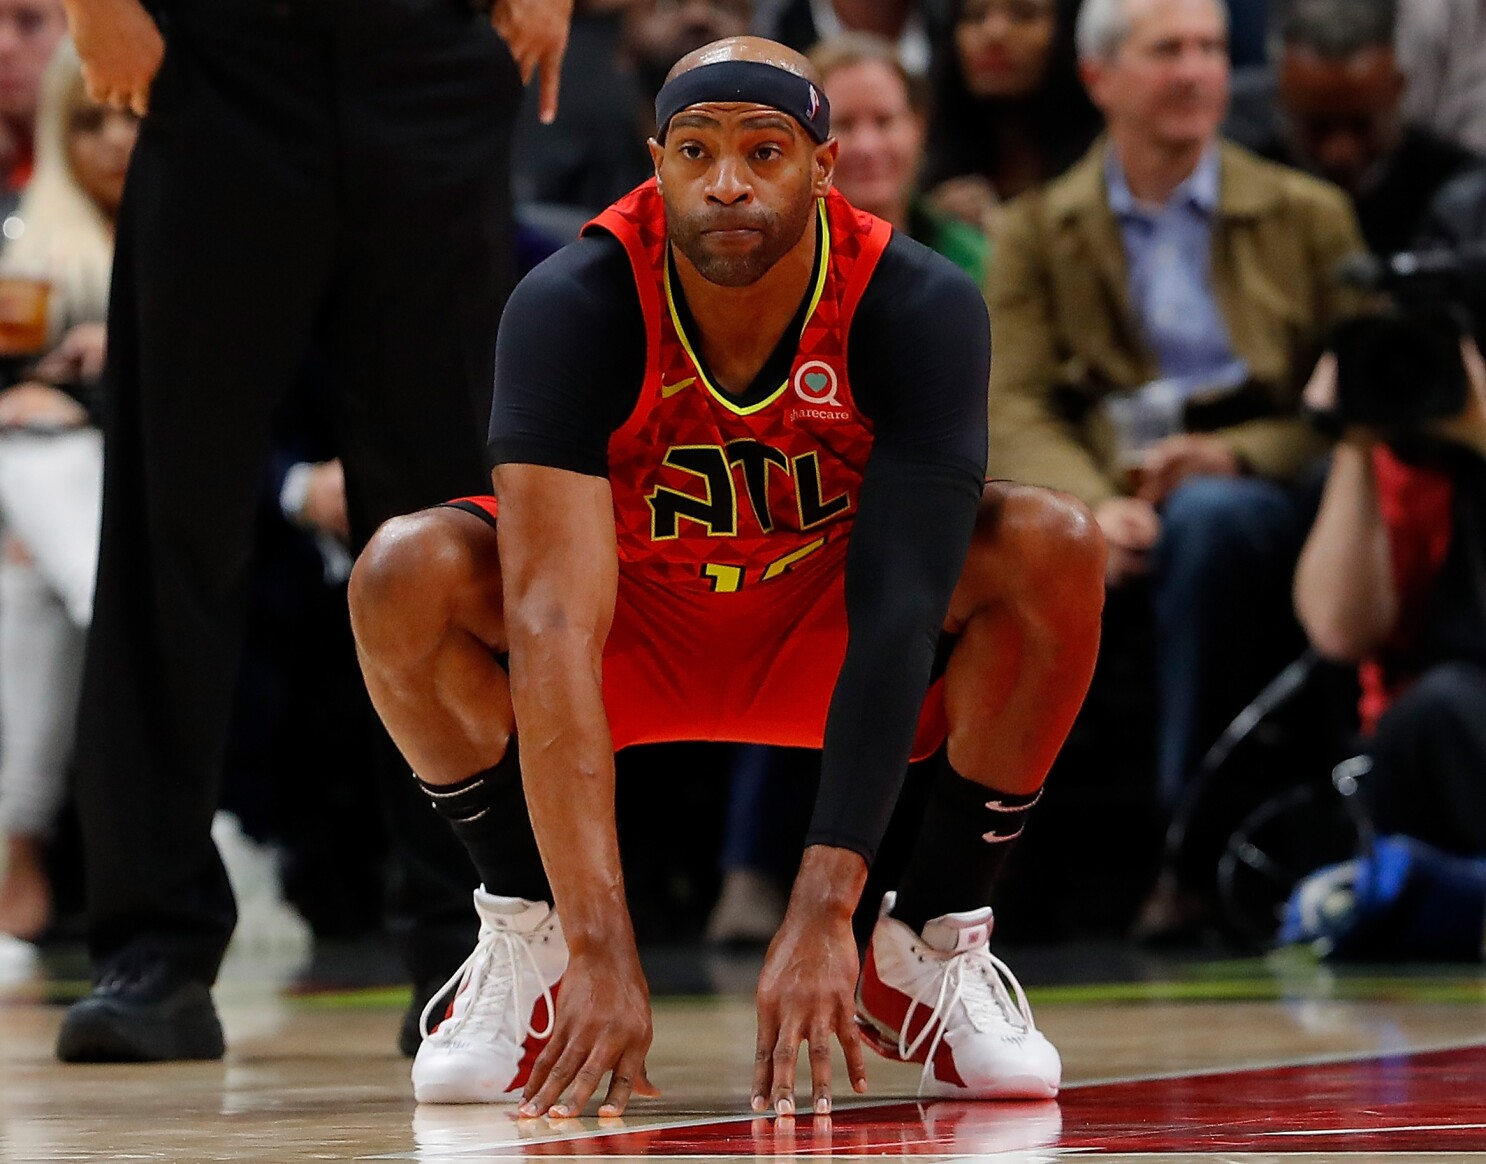 Vince Carter will retire an NBA legend, but his career began ...